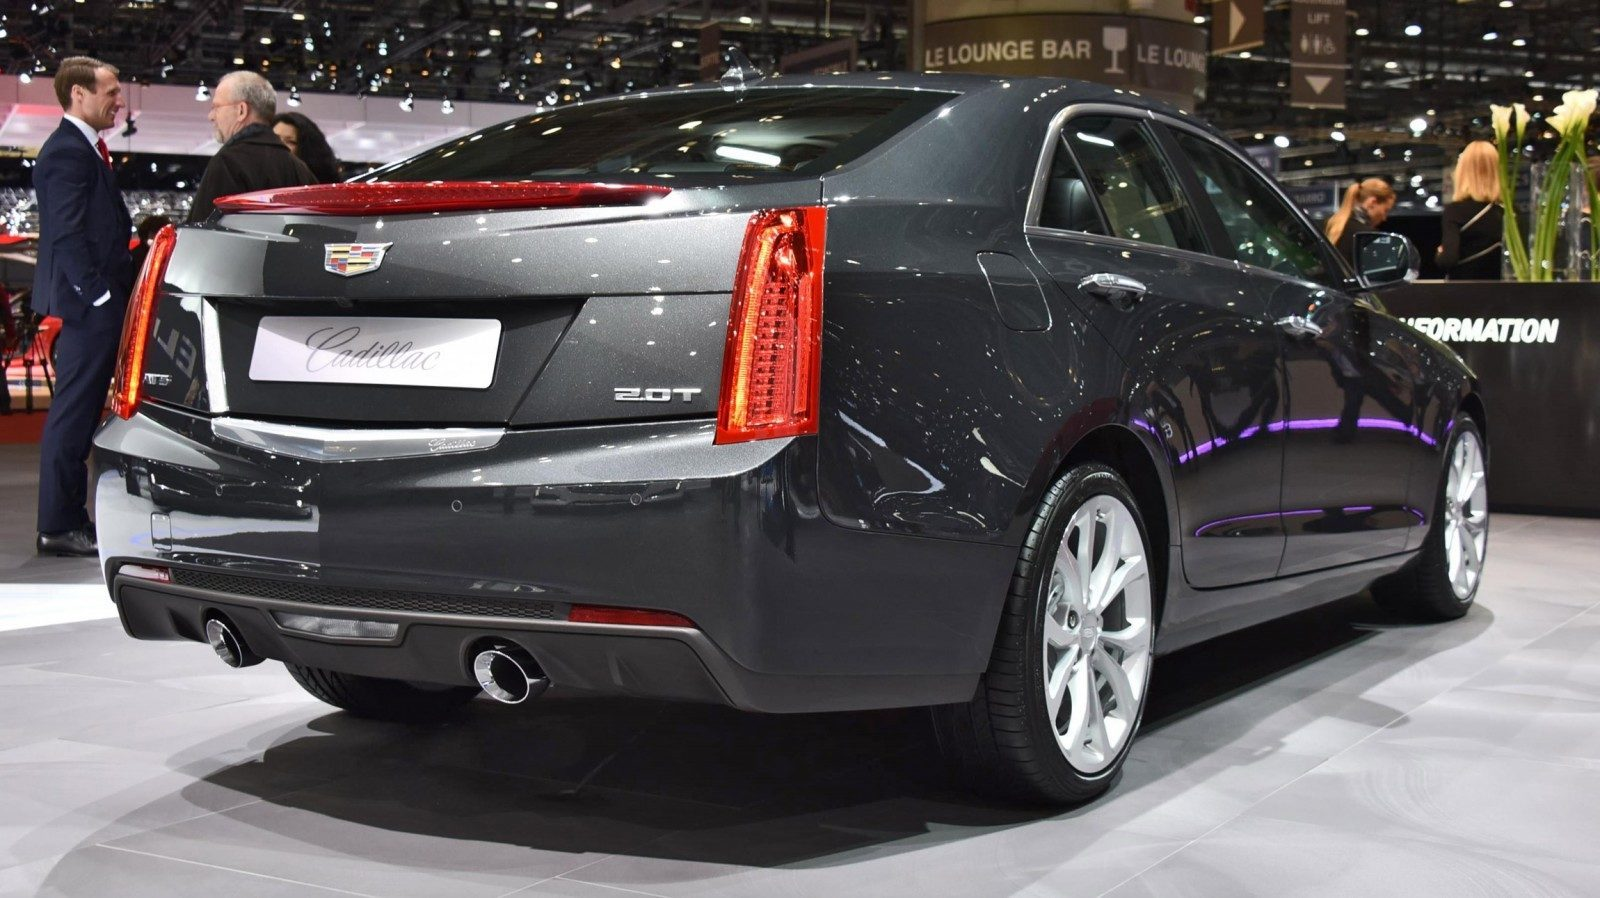 Geneva 2015 Gallery - Cadillac ATS-V and CTS-V + Euro-Spec Escalade Platinum 32